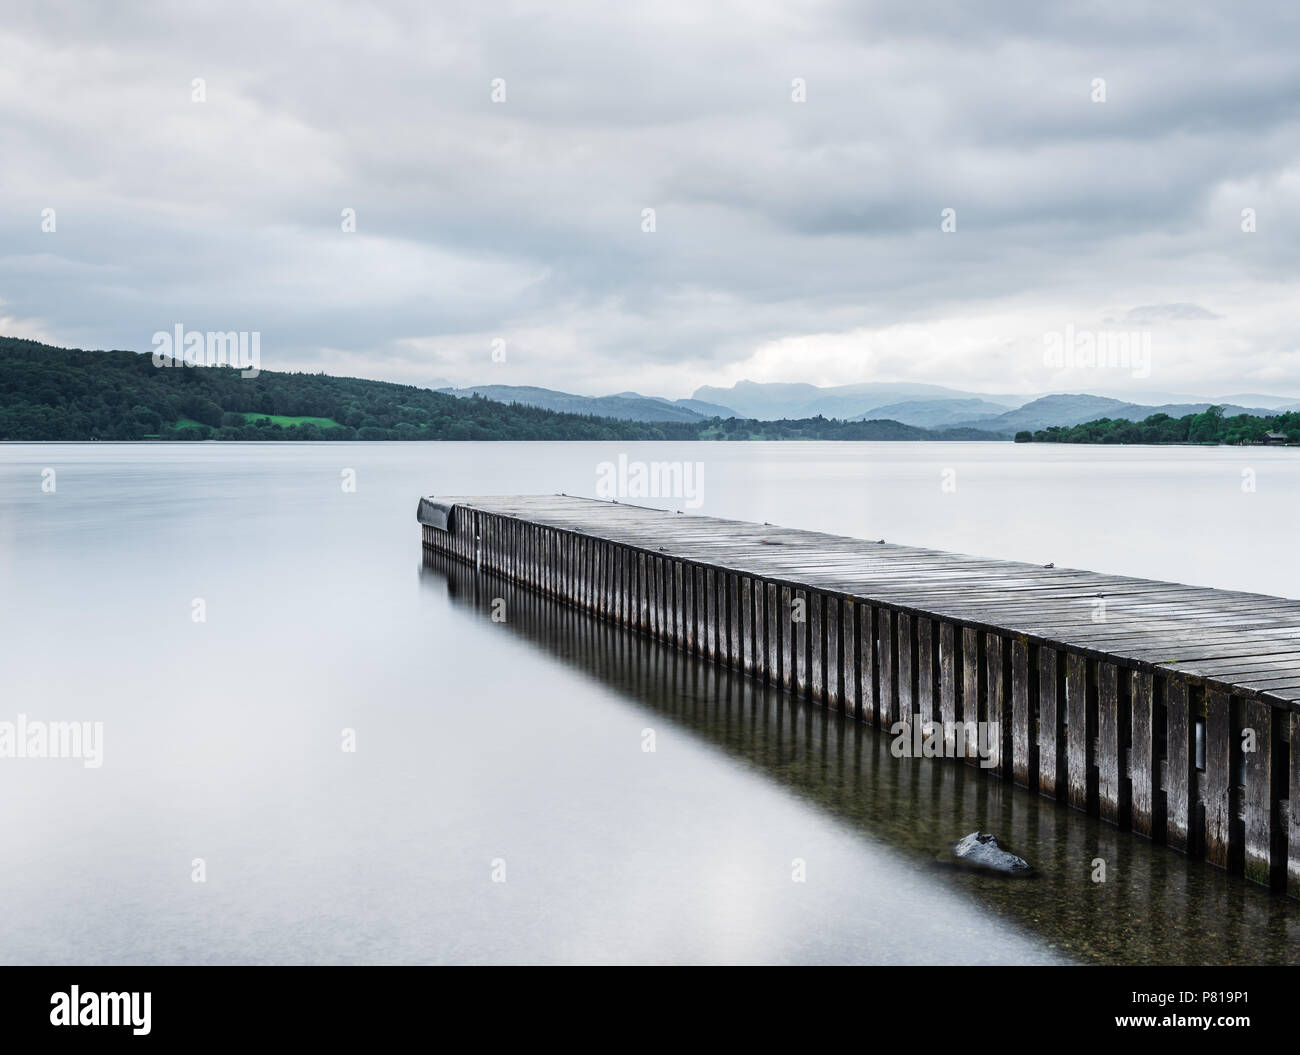 Pier stretching out into the calm waters of Lake Windermere at Miller Ground in the Lake District with the Langdale Pikes in the distance - Stock Image